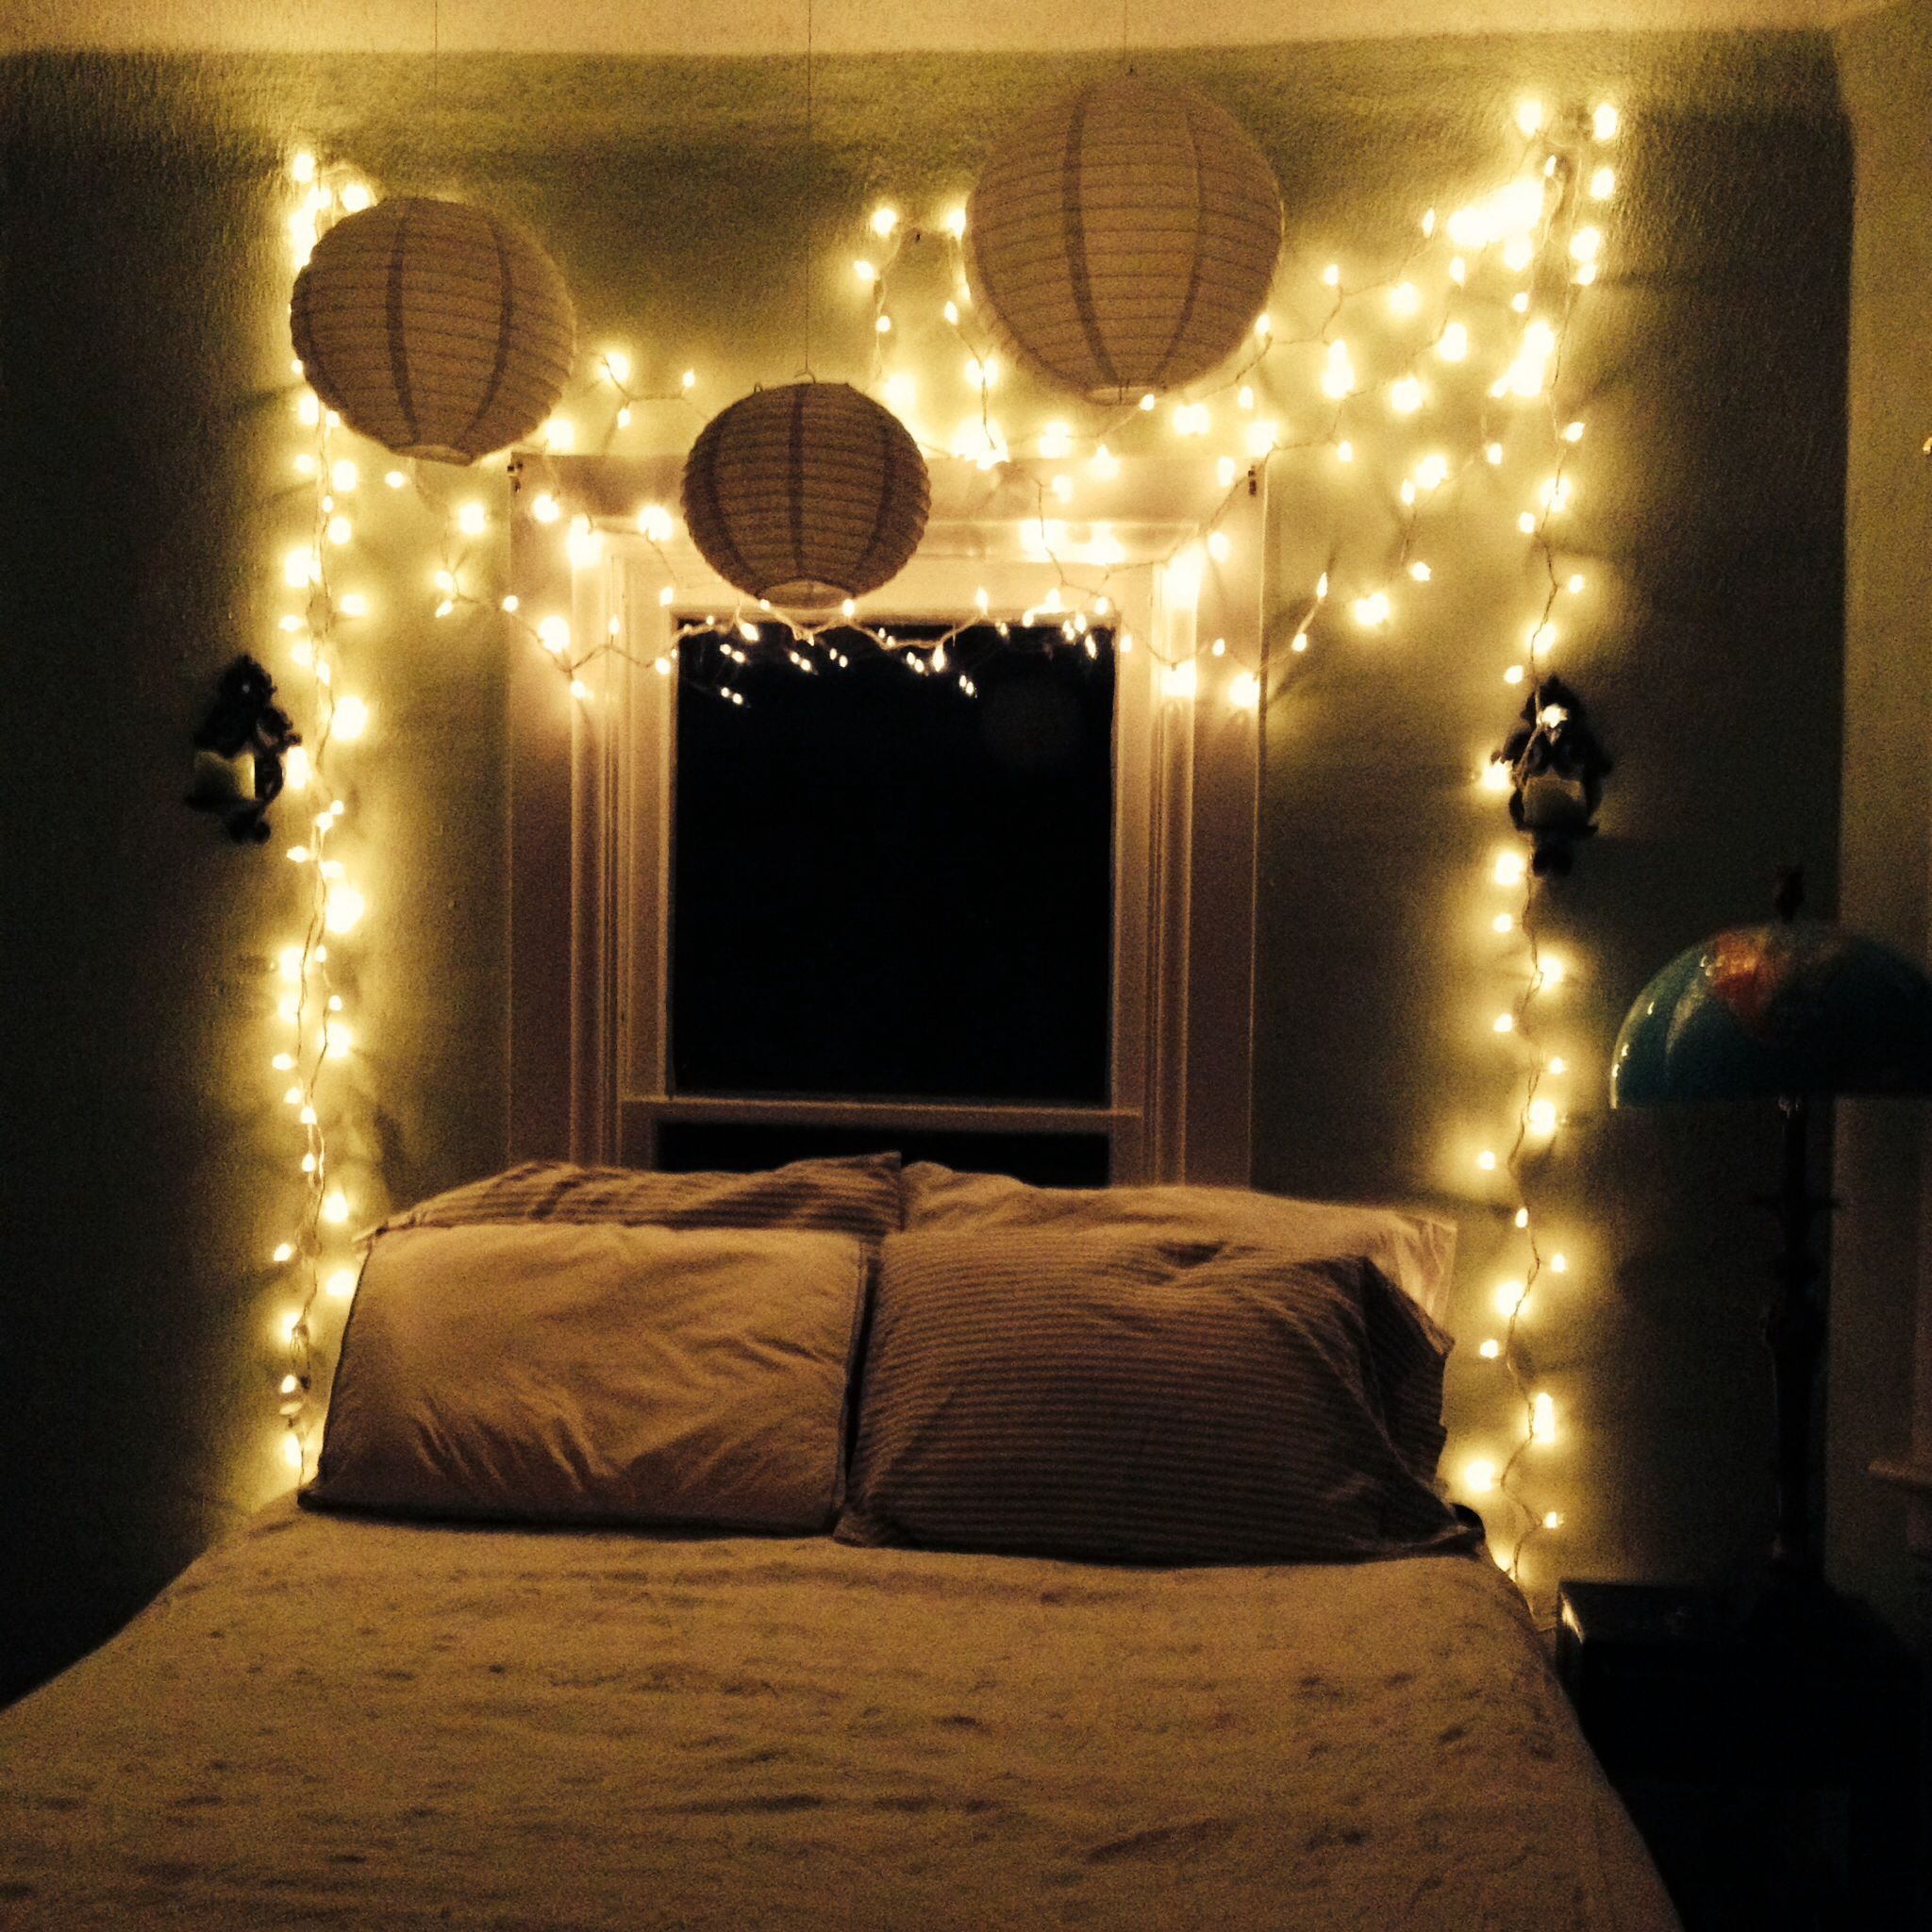 Superieur My Bedroom Oasis: Twinkle Lights, White, And Stripes.